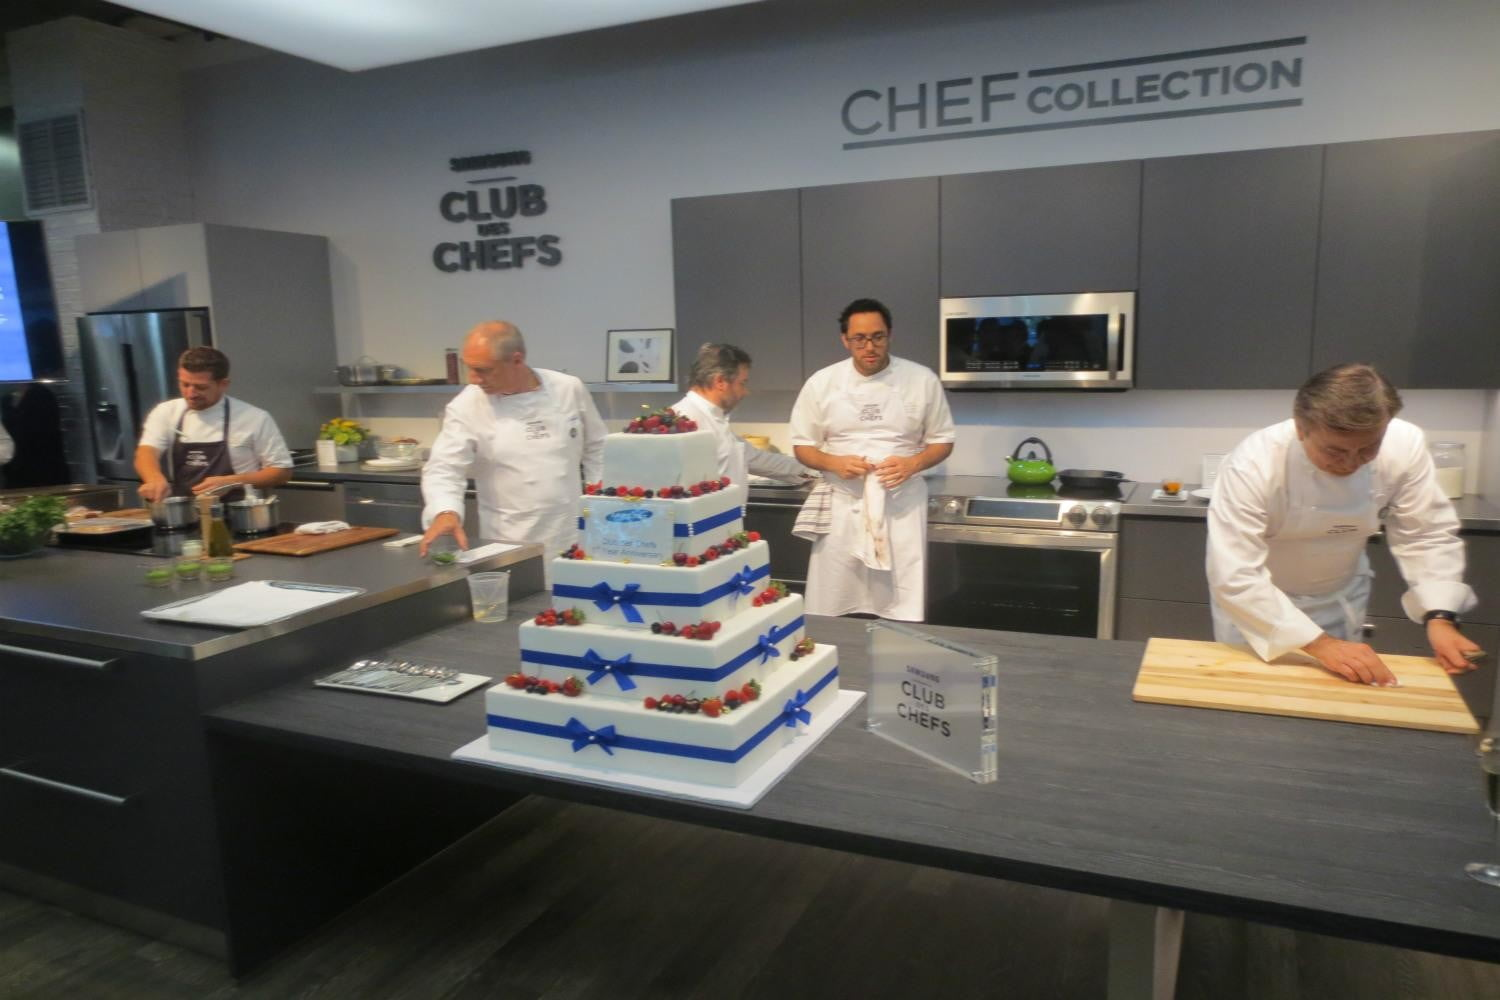 samsung teams top notch chefs celebrate launch new home gear img 0787